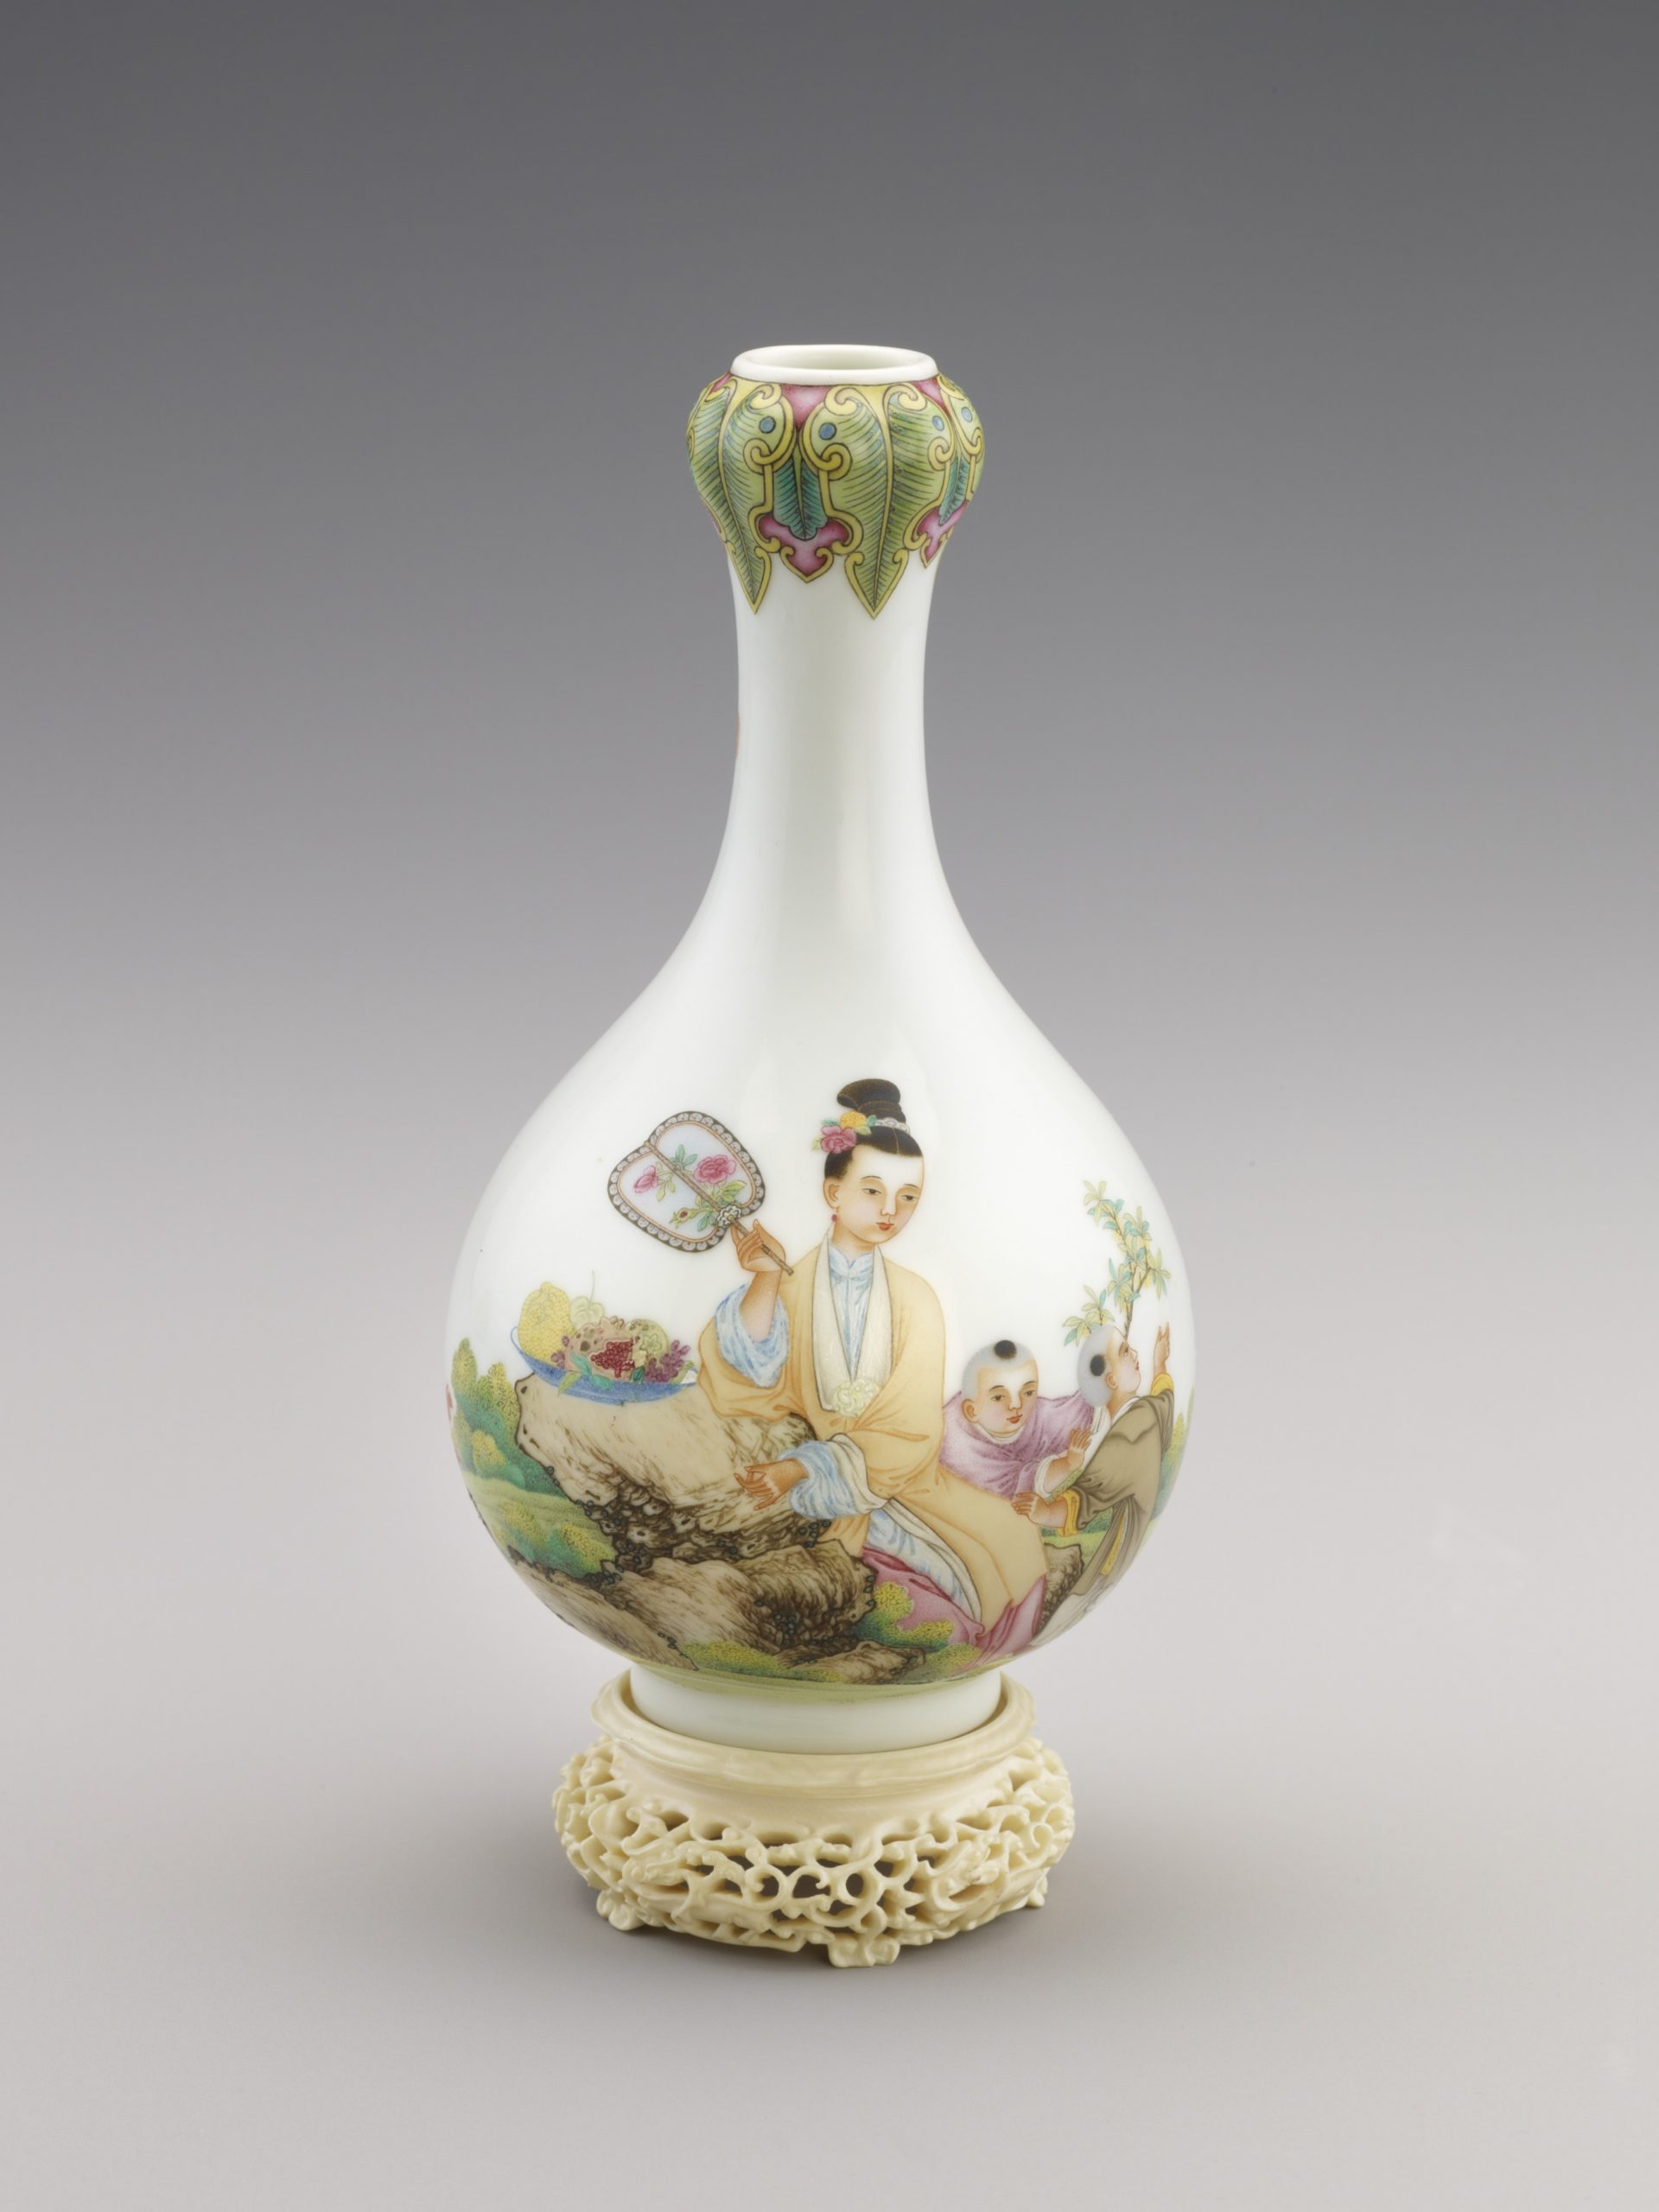 white vase with colorful illustrations and a thin neck